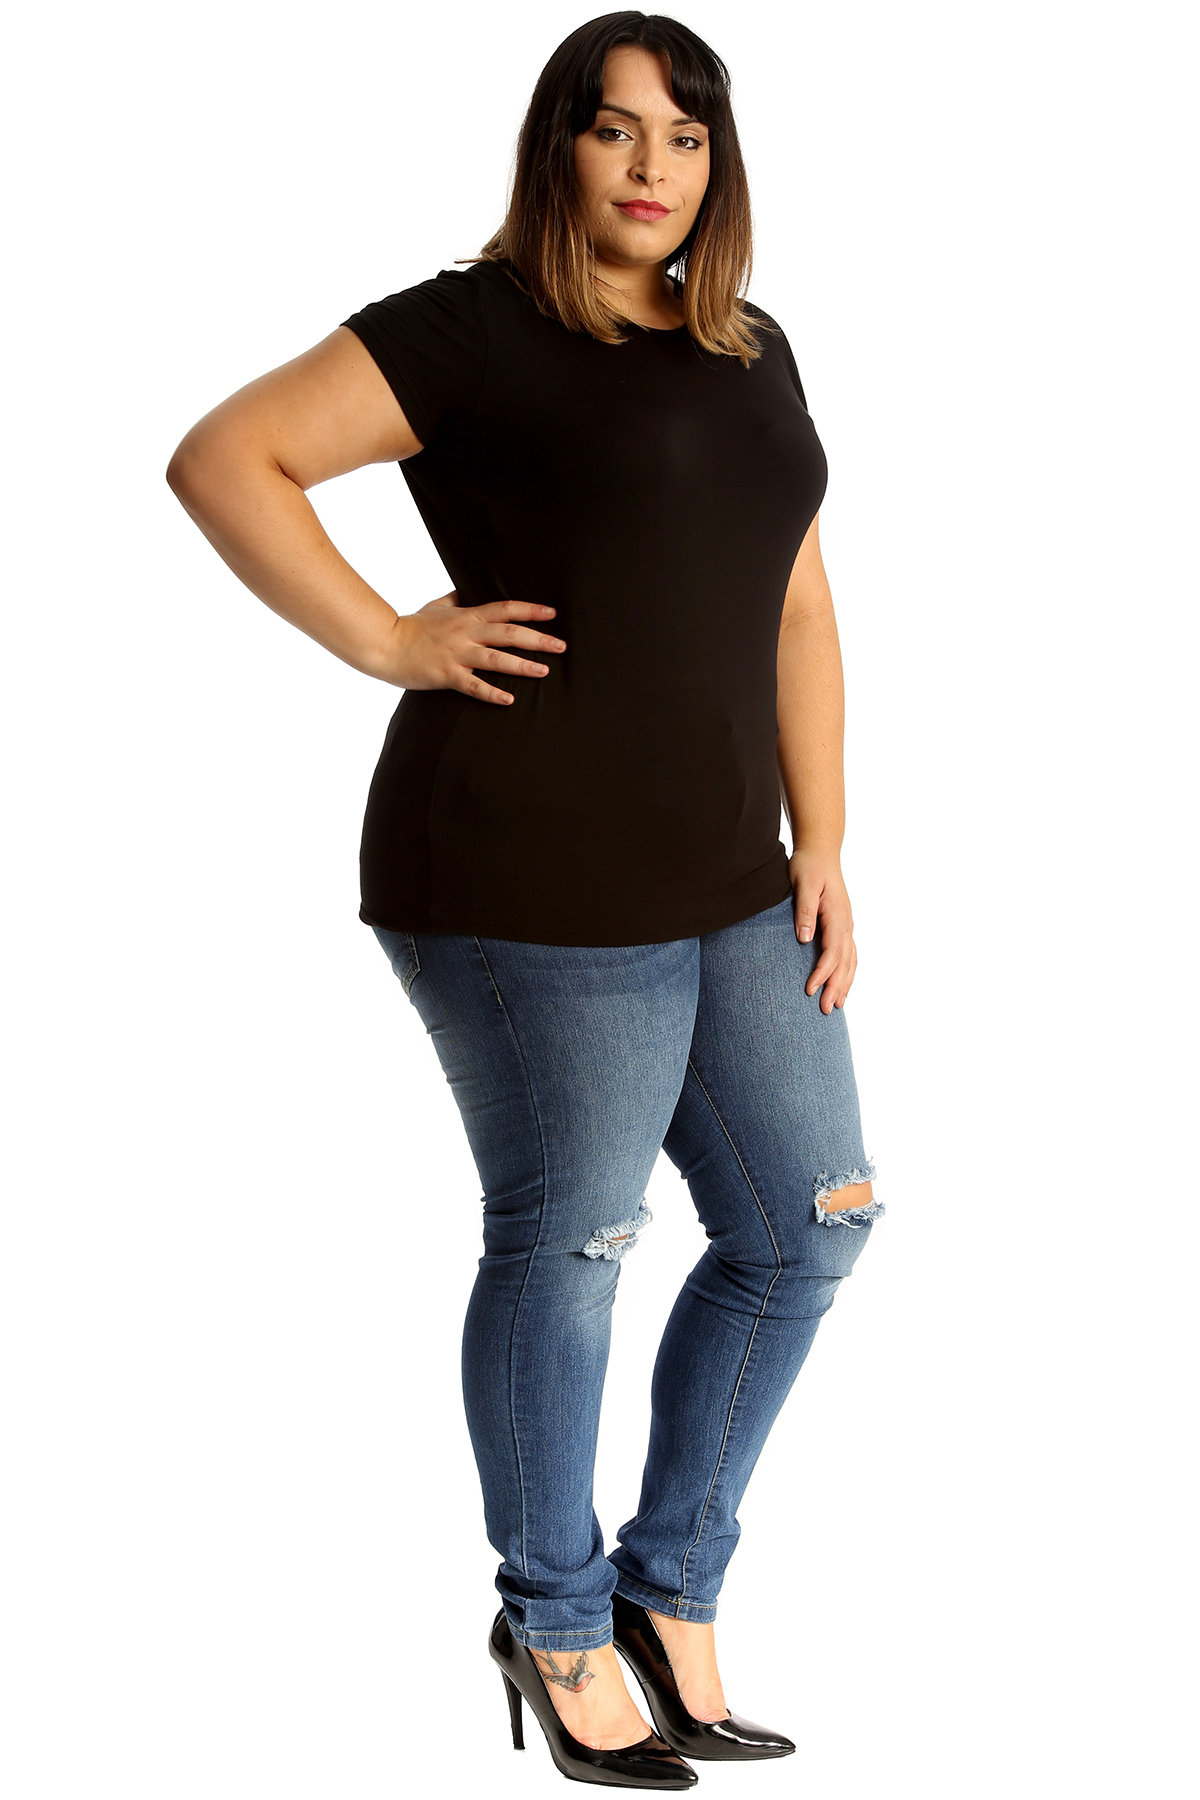 new ladies plus size jeans womens ripped frayed straight